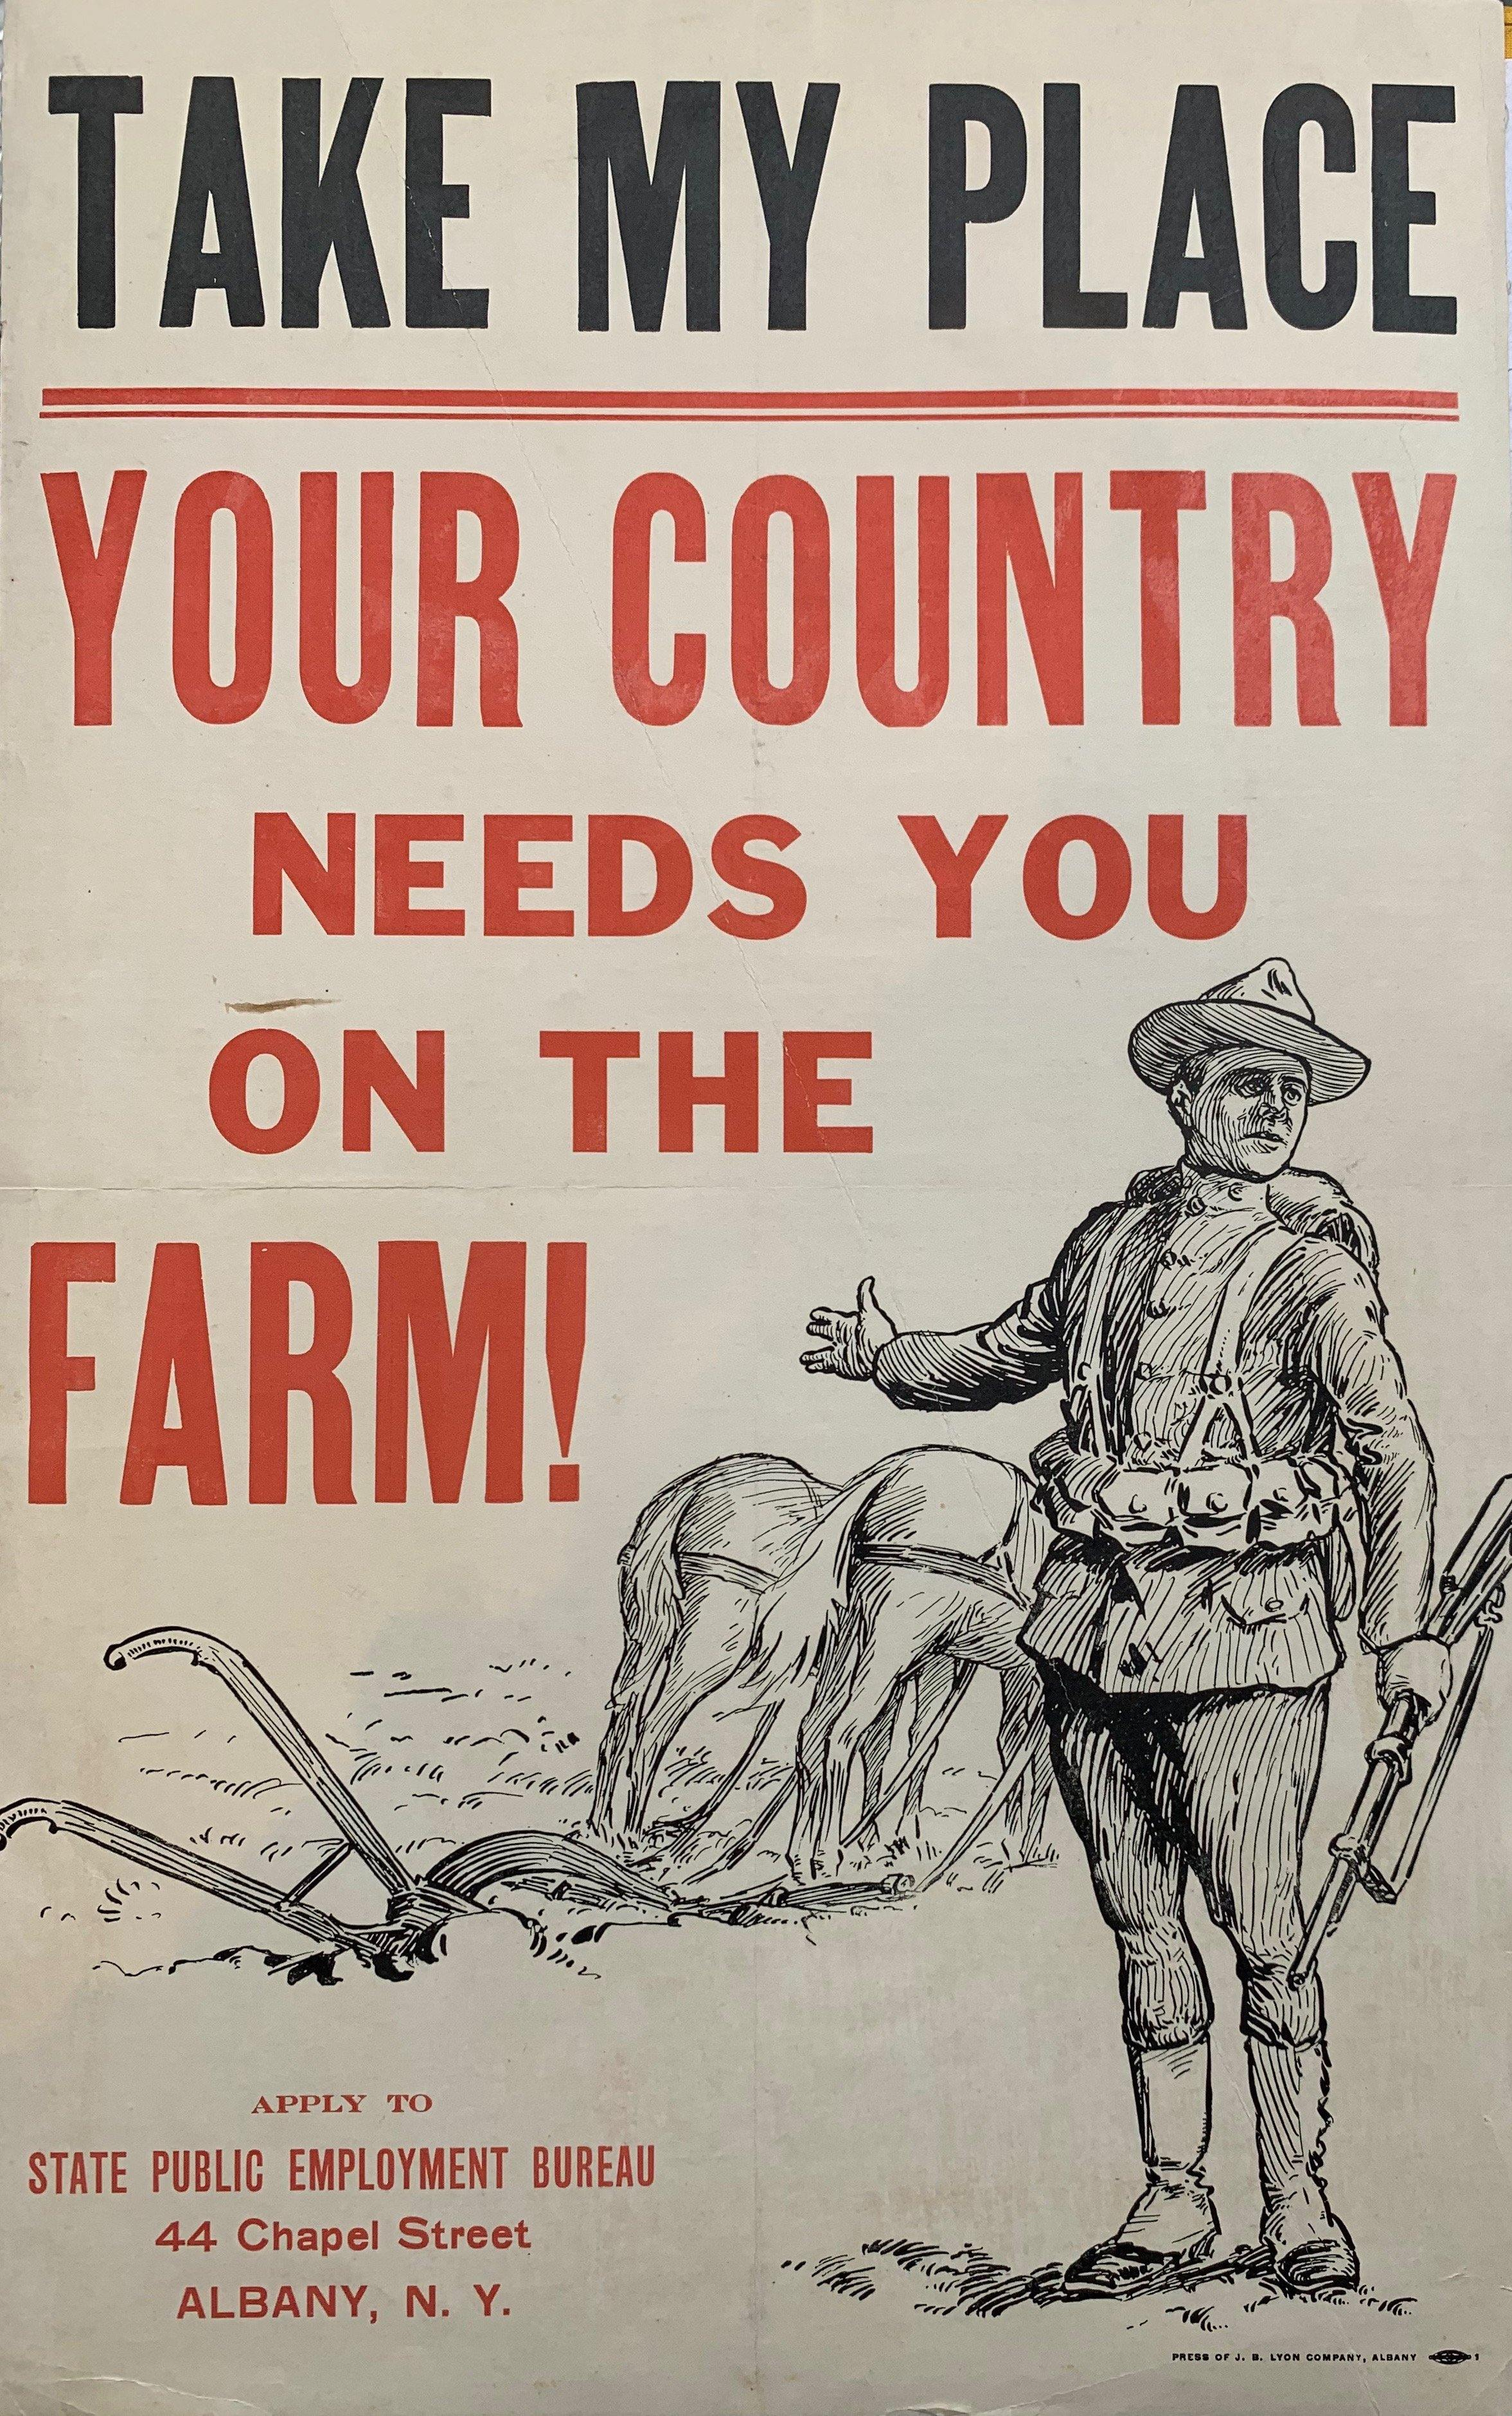 Take My Place, your Country Needs you on the Farm! - Poster Museum